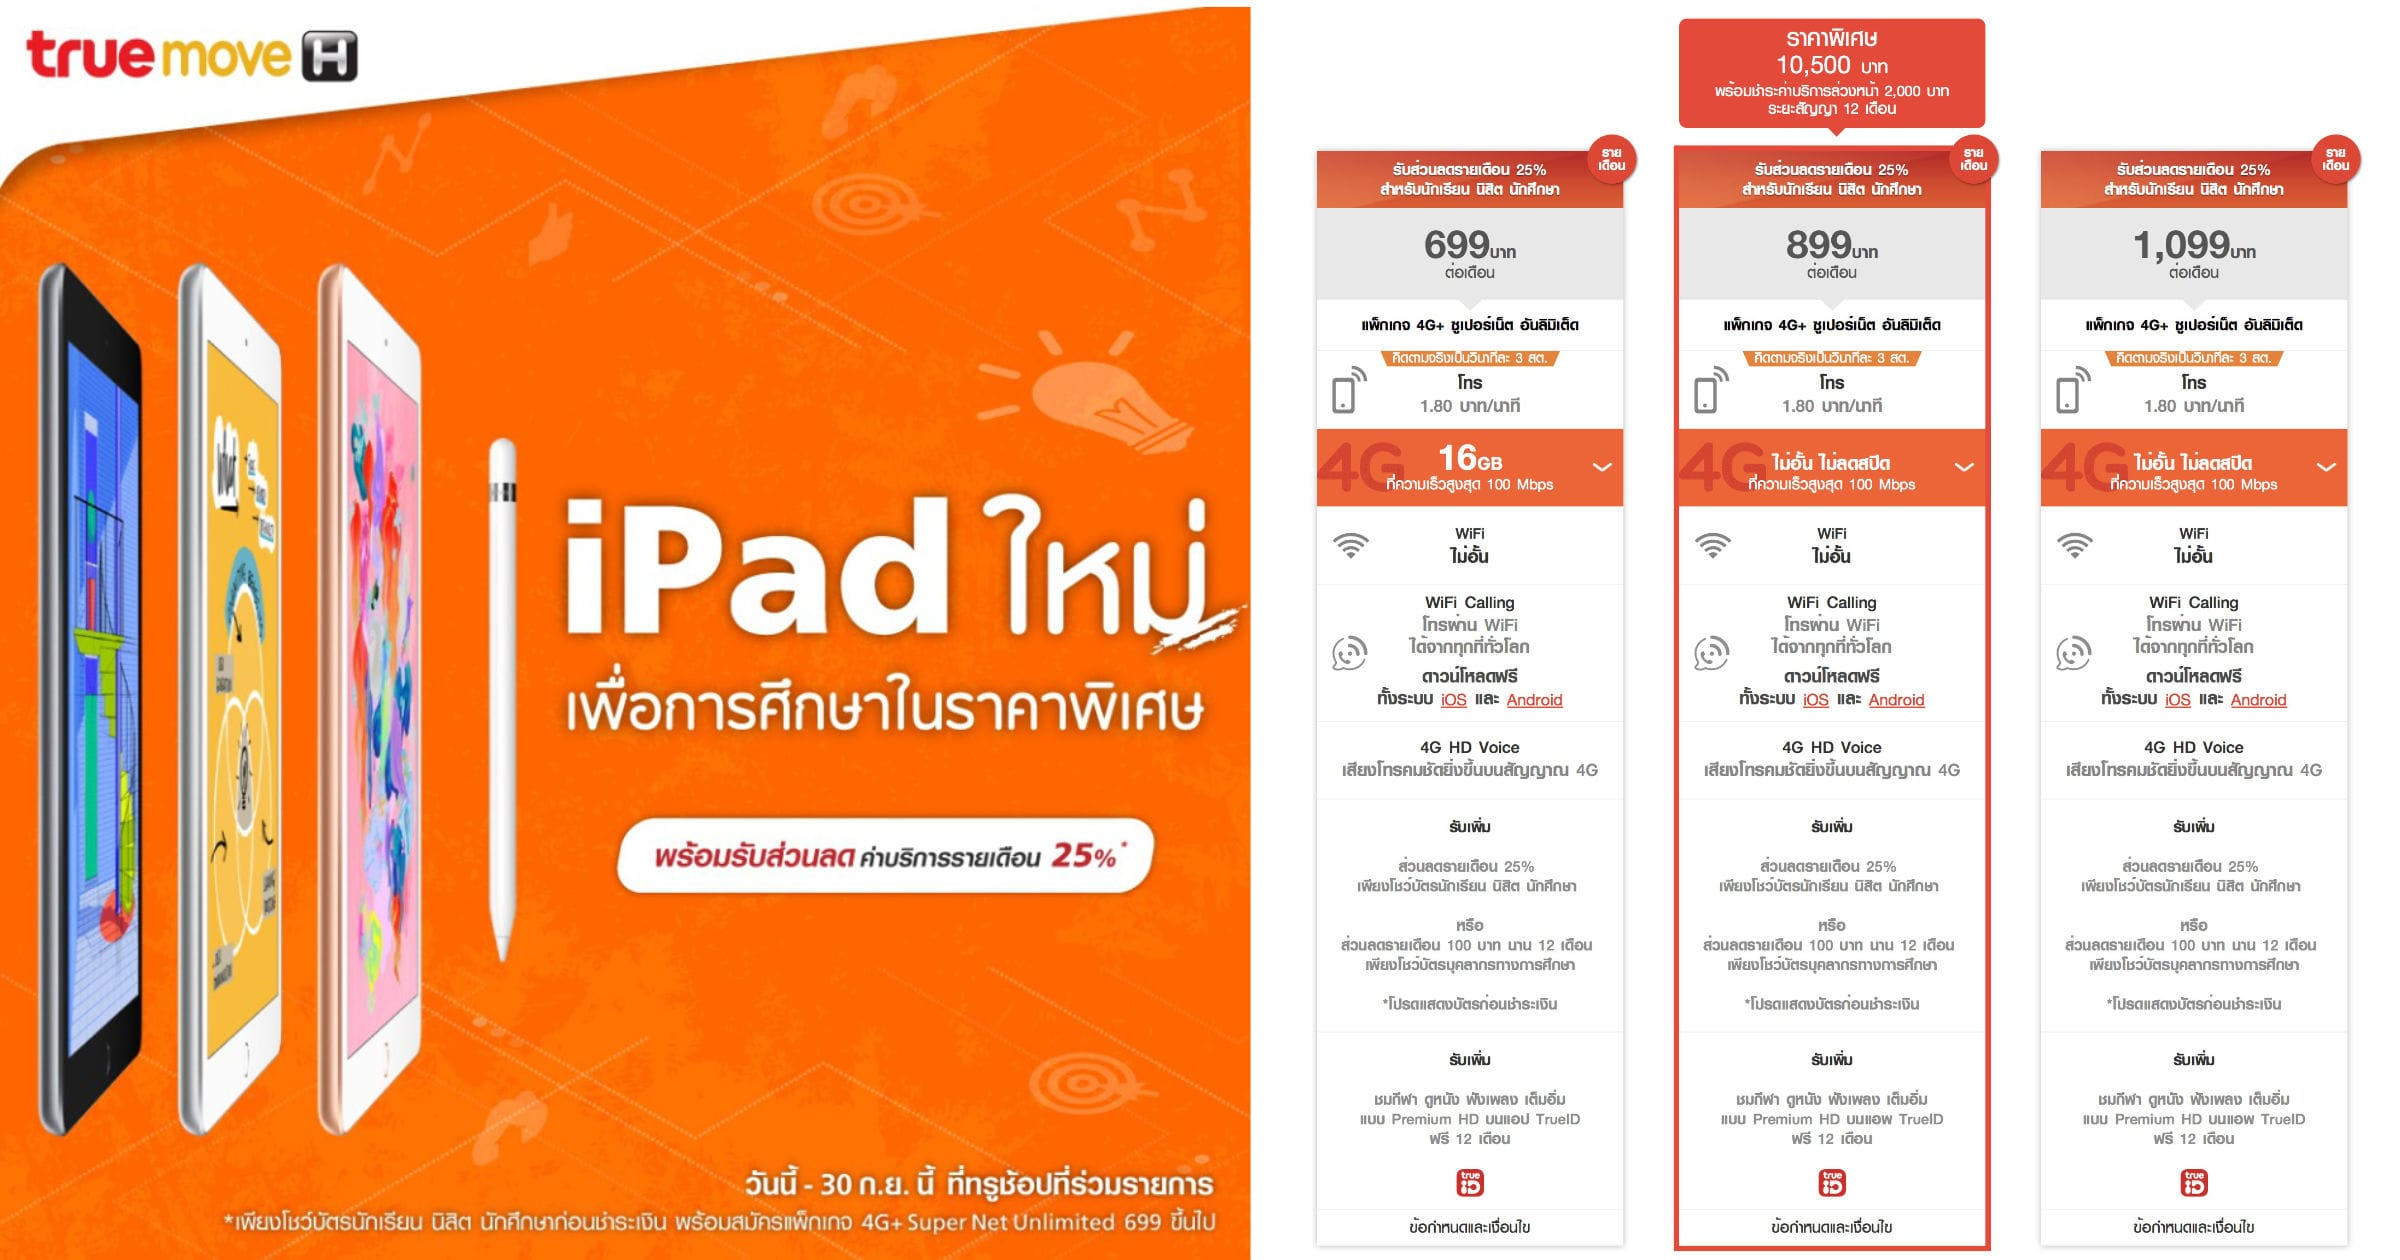 Ipad 2018 Cellular Truemoveh Promo